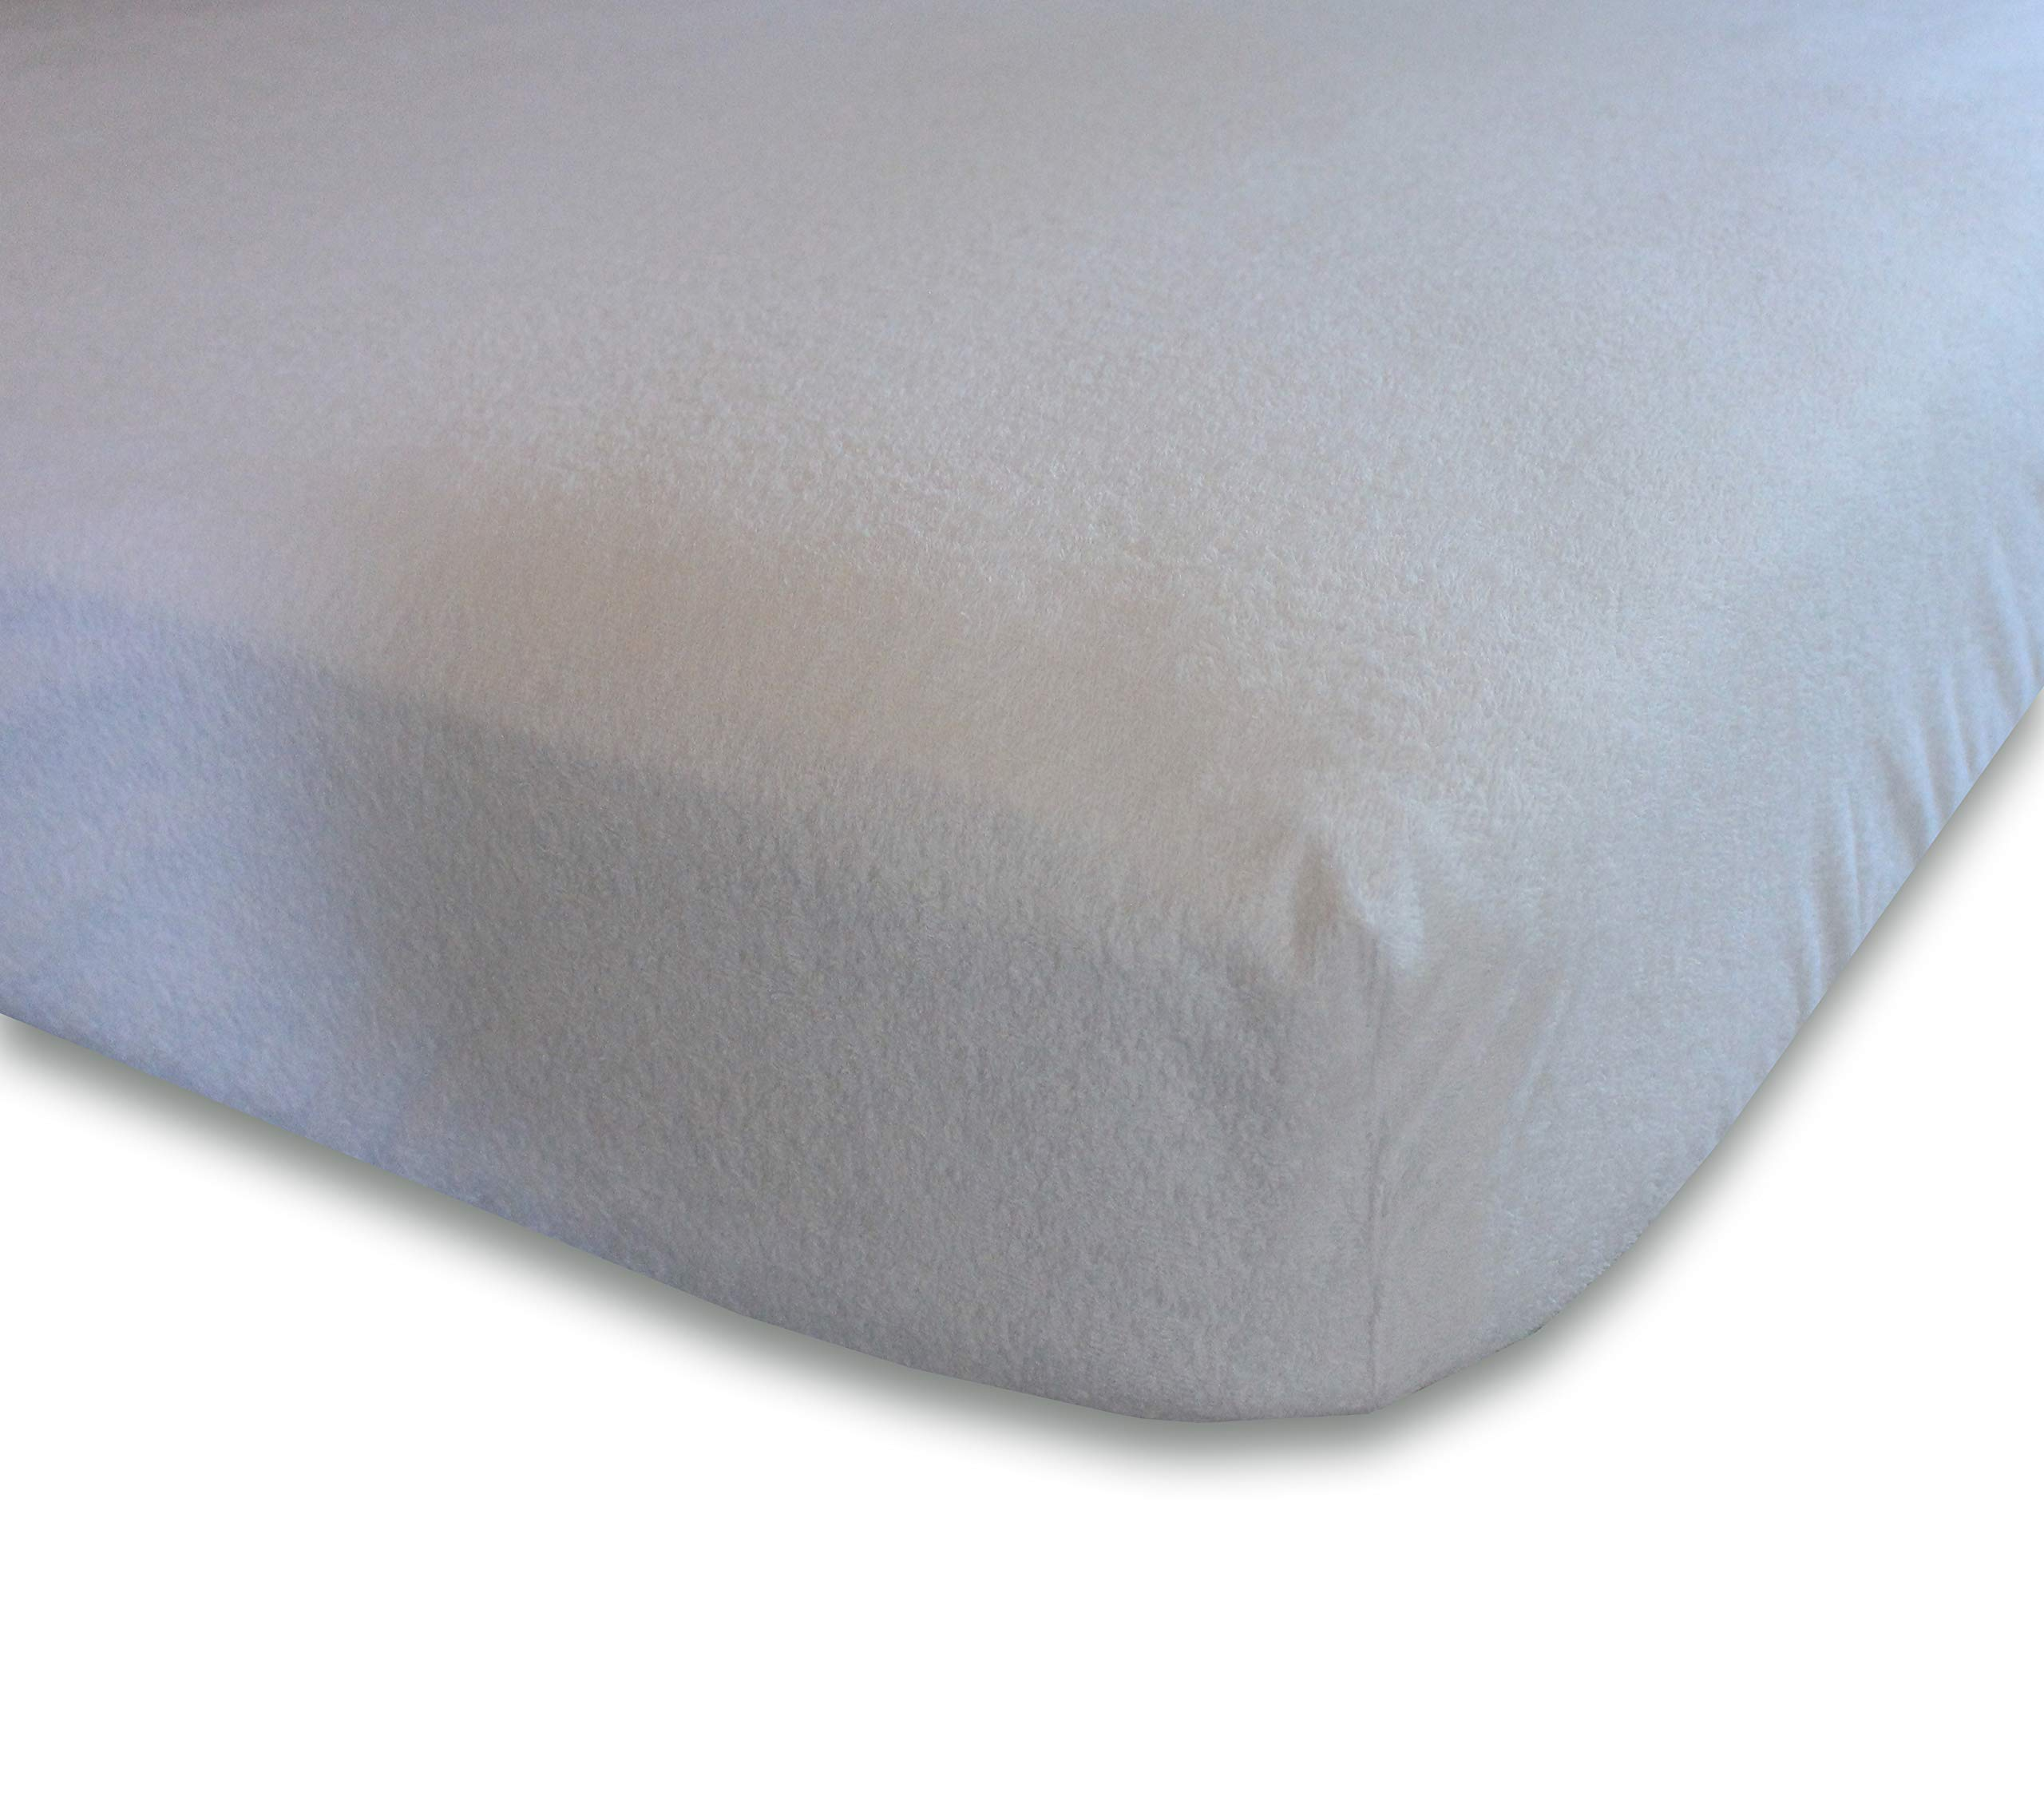 AB Lifestyles 48x75 Dust Mite Proof, Waterproof Mattress Cover for a 3/4 Full Bunk bed in Camper, RV, Travel Trailer or Motorhome